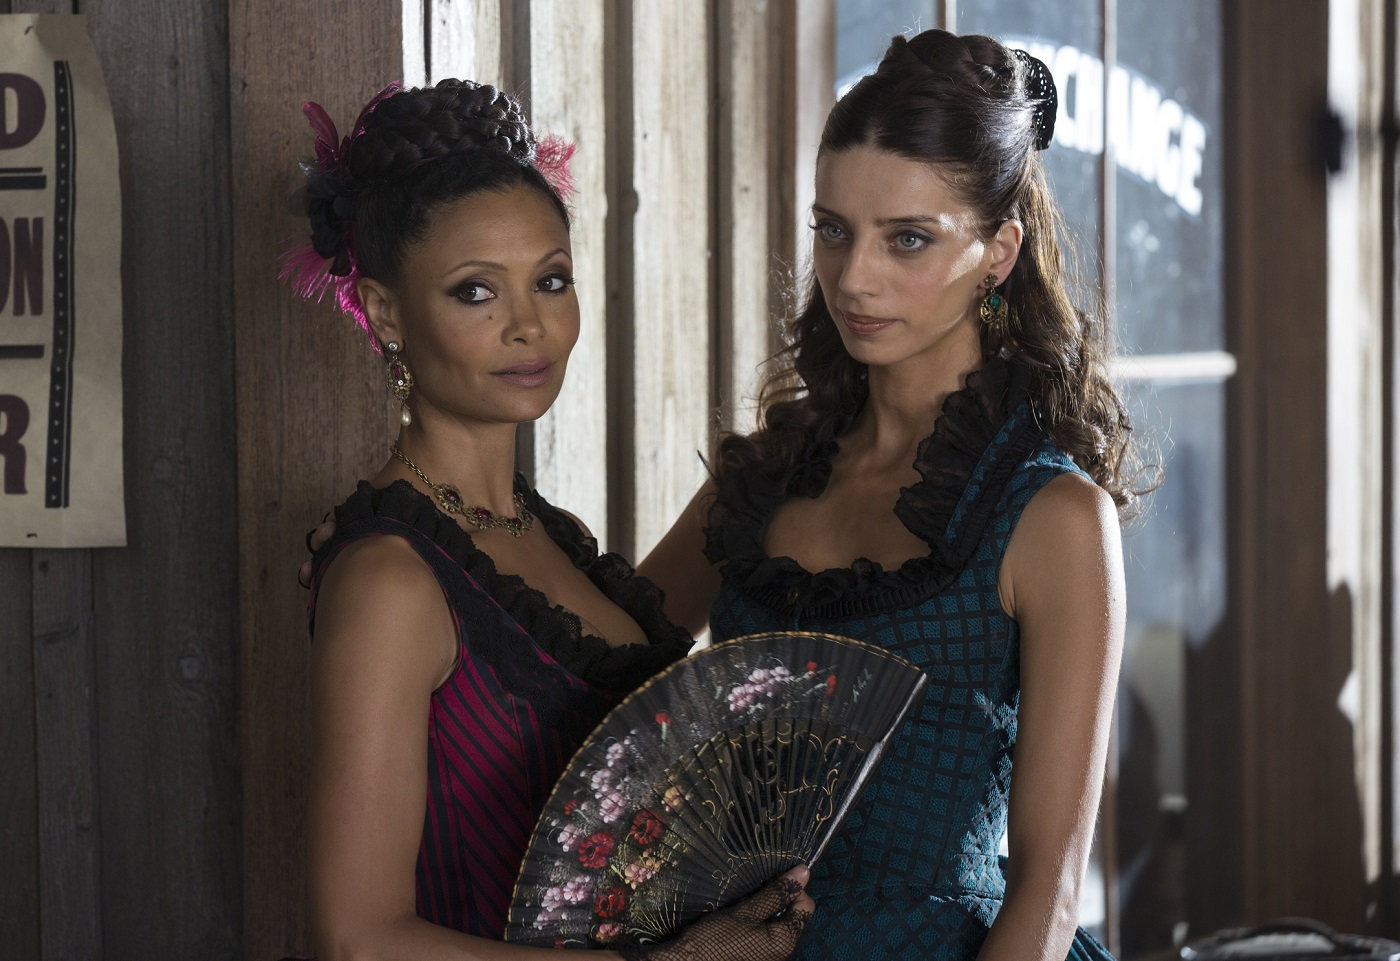 Maeve and Clementine on Westworld